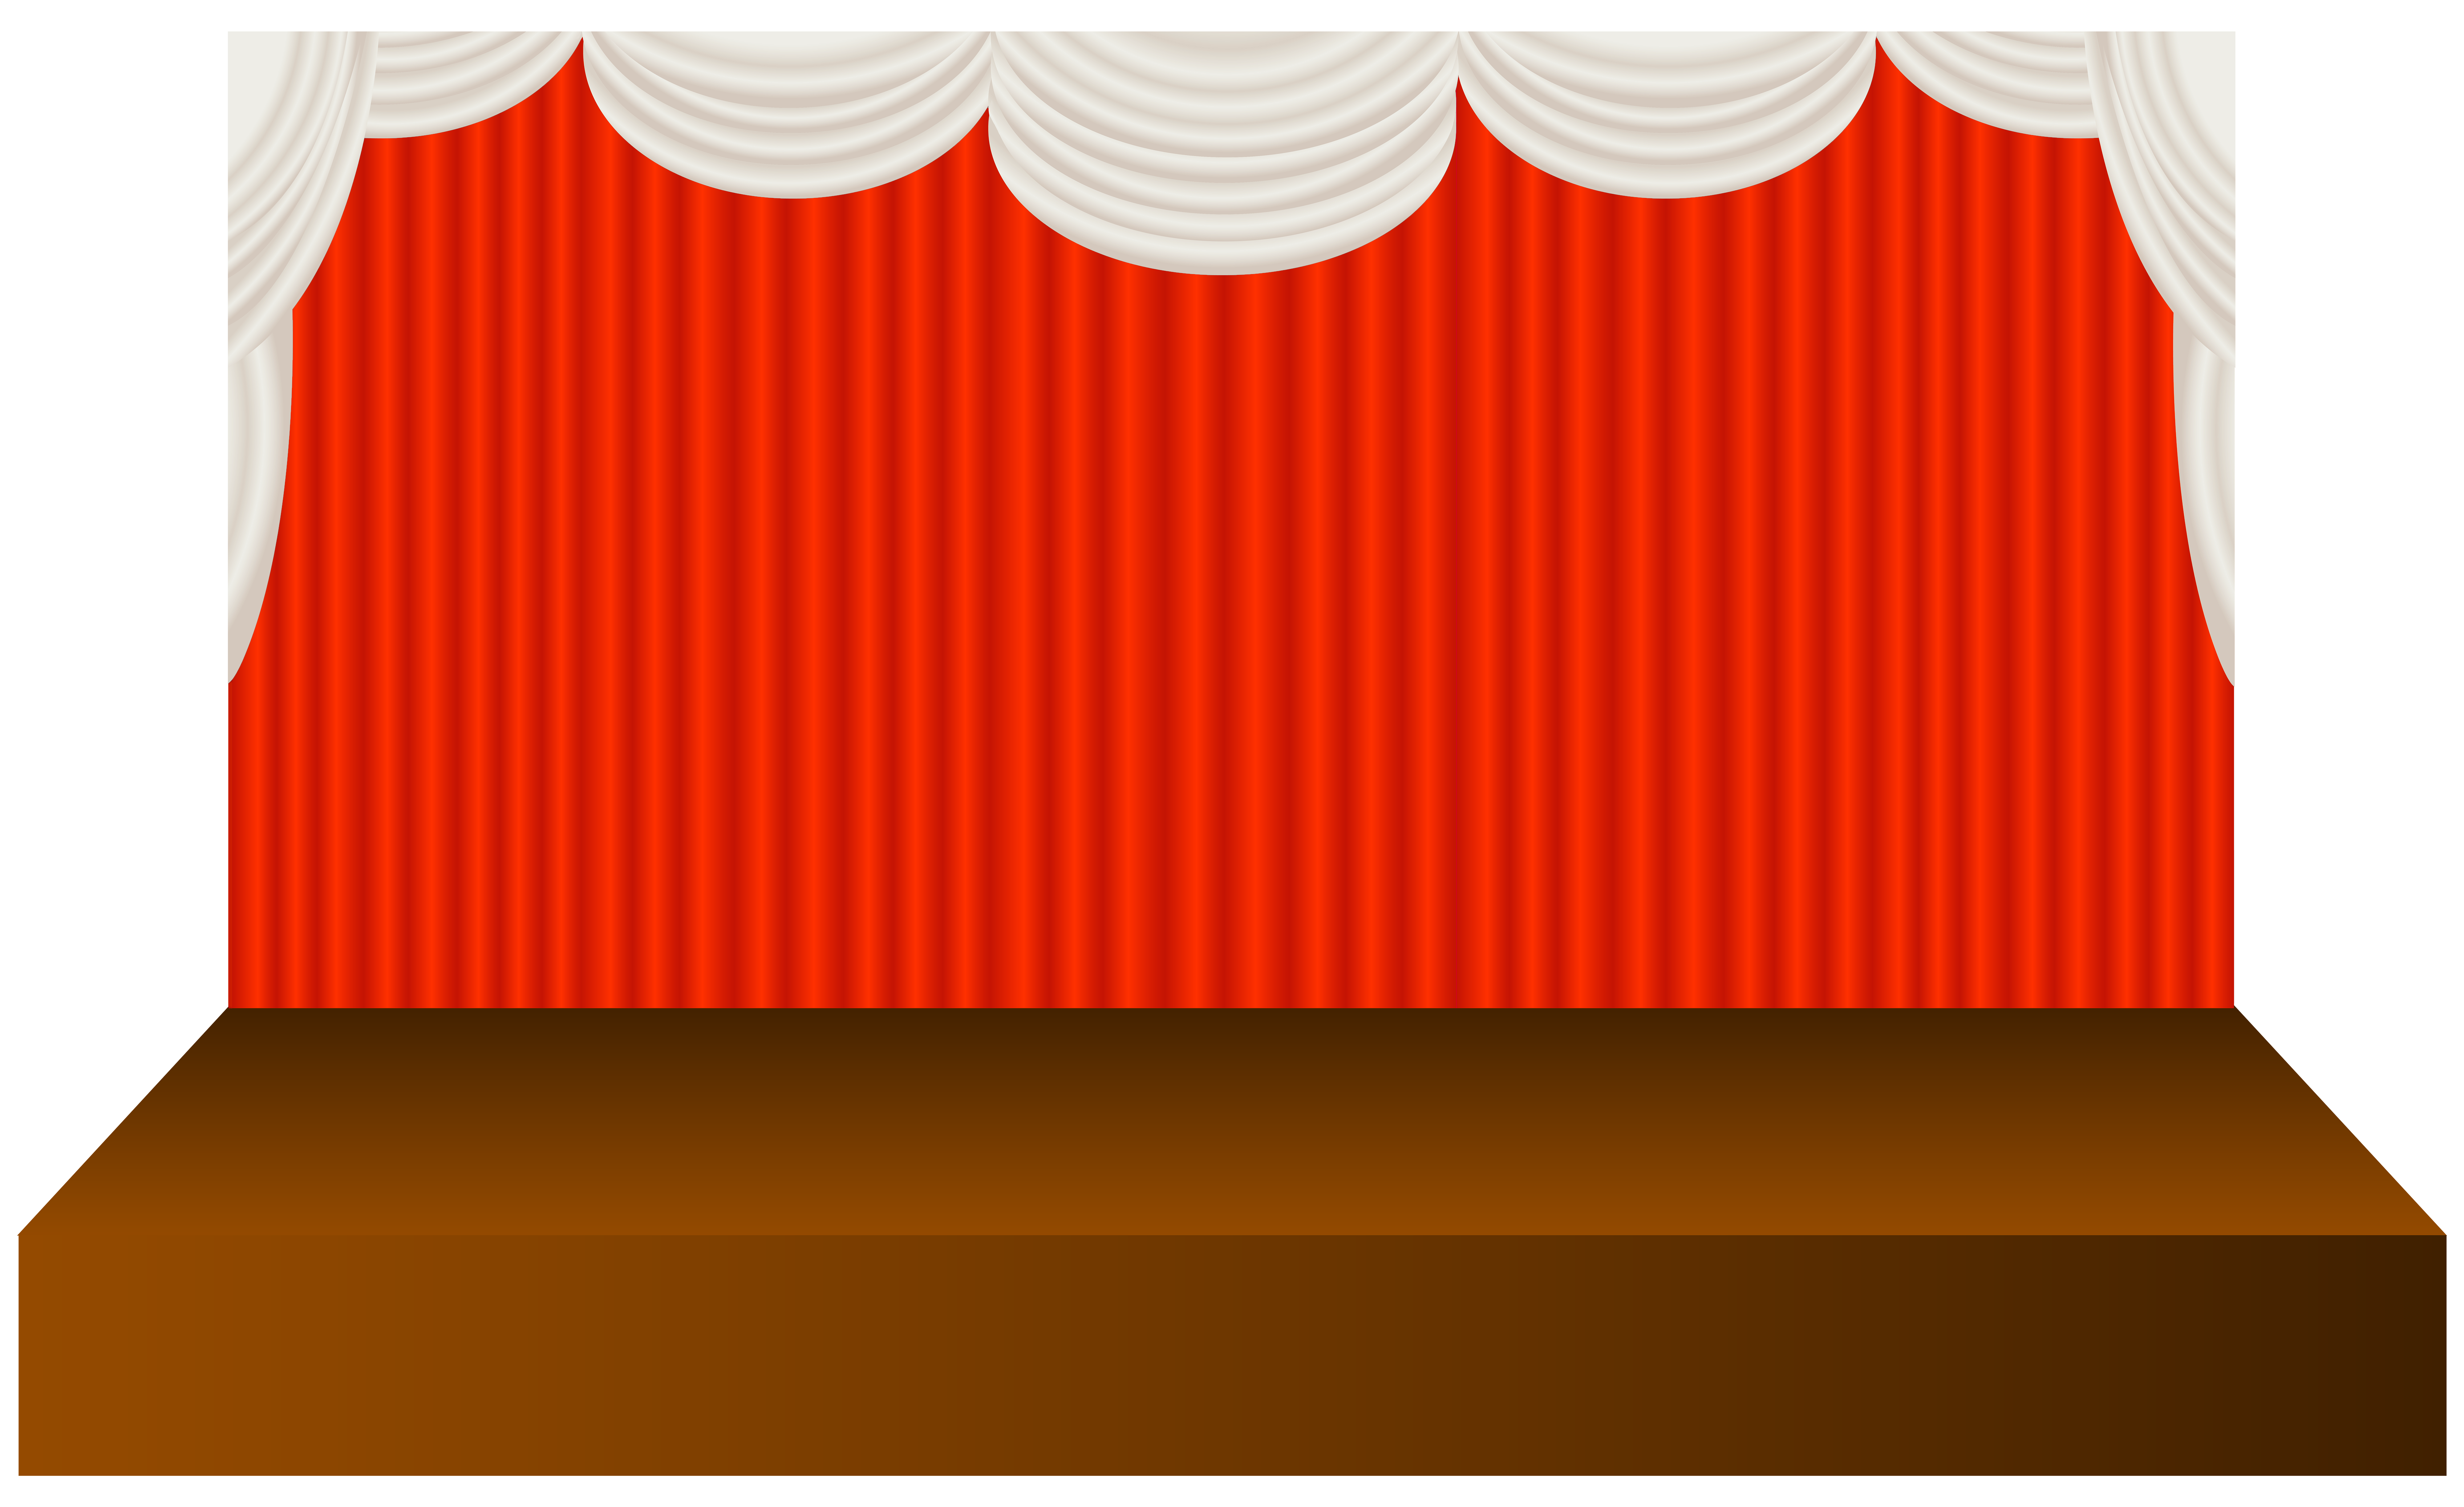 Theatre curtains png - Download